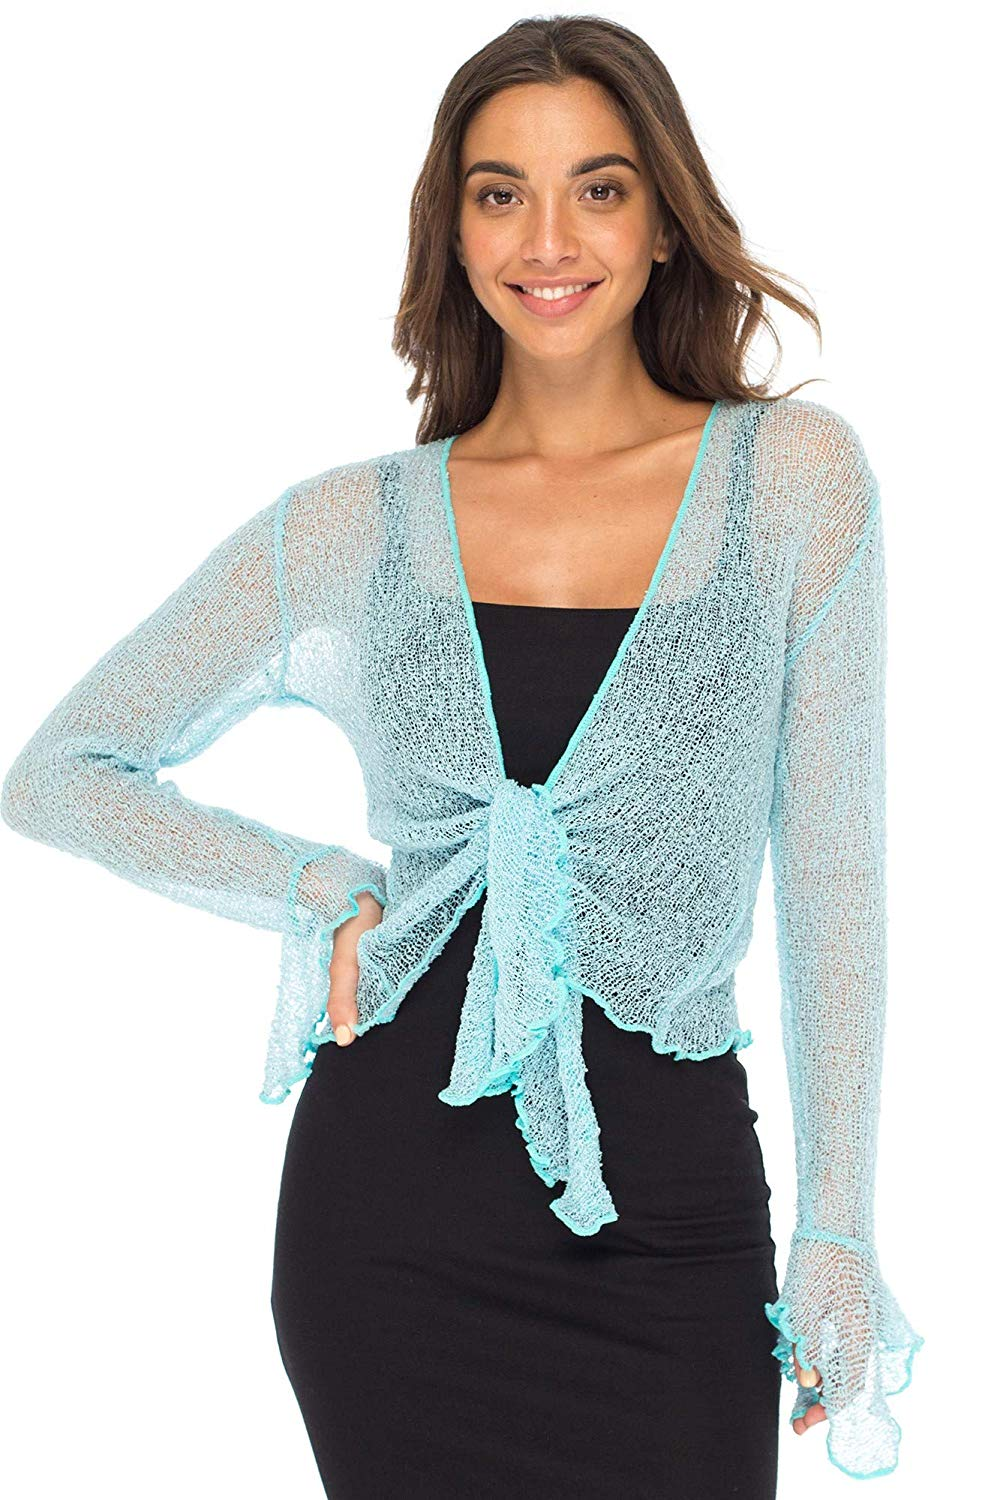 Back From Bali Womens Sheer Shrug Bolero Long Sleeves Cropped Cardigan Lite Bell Sleeves Powder Blue L/XL